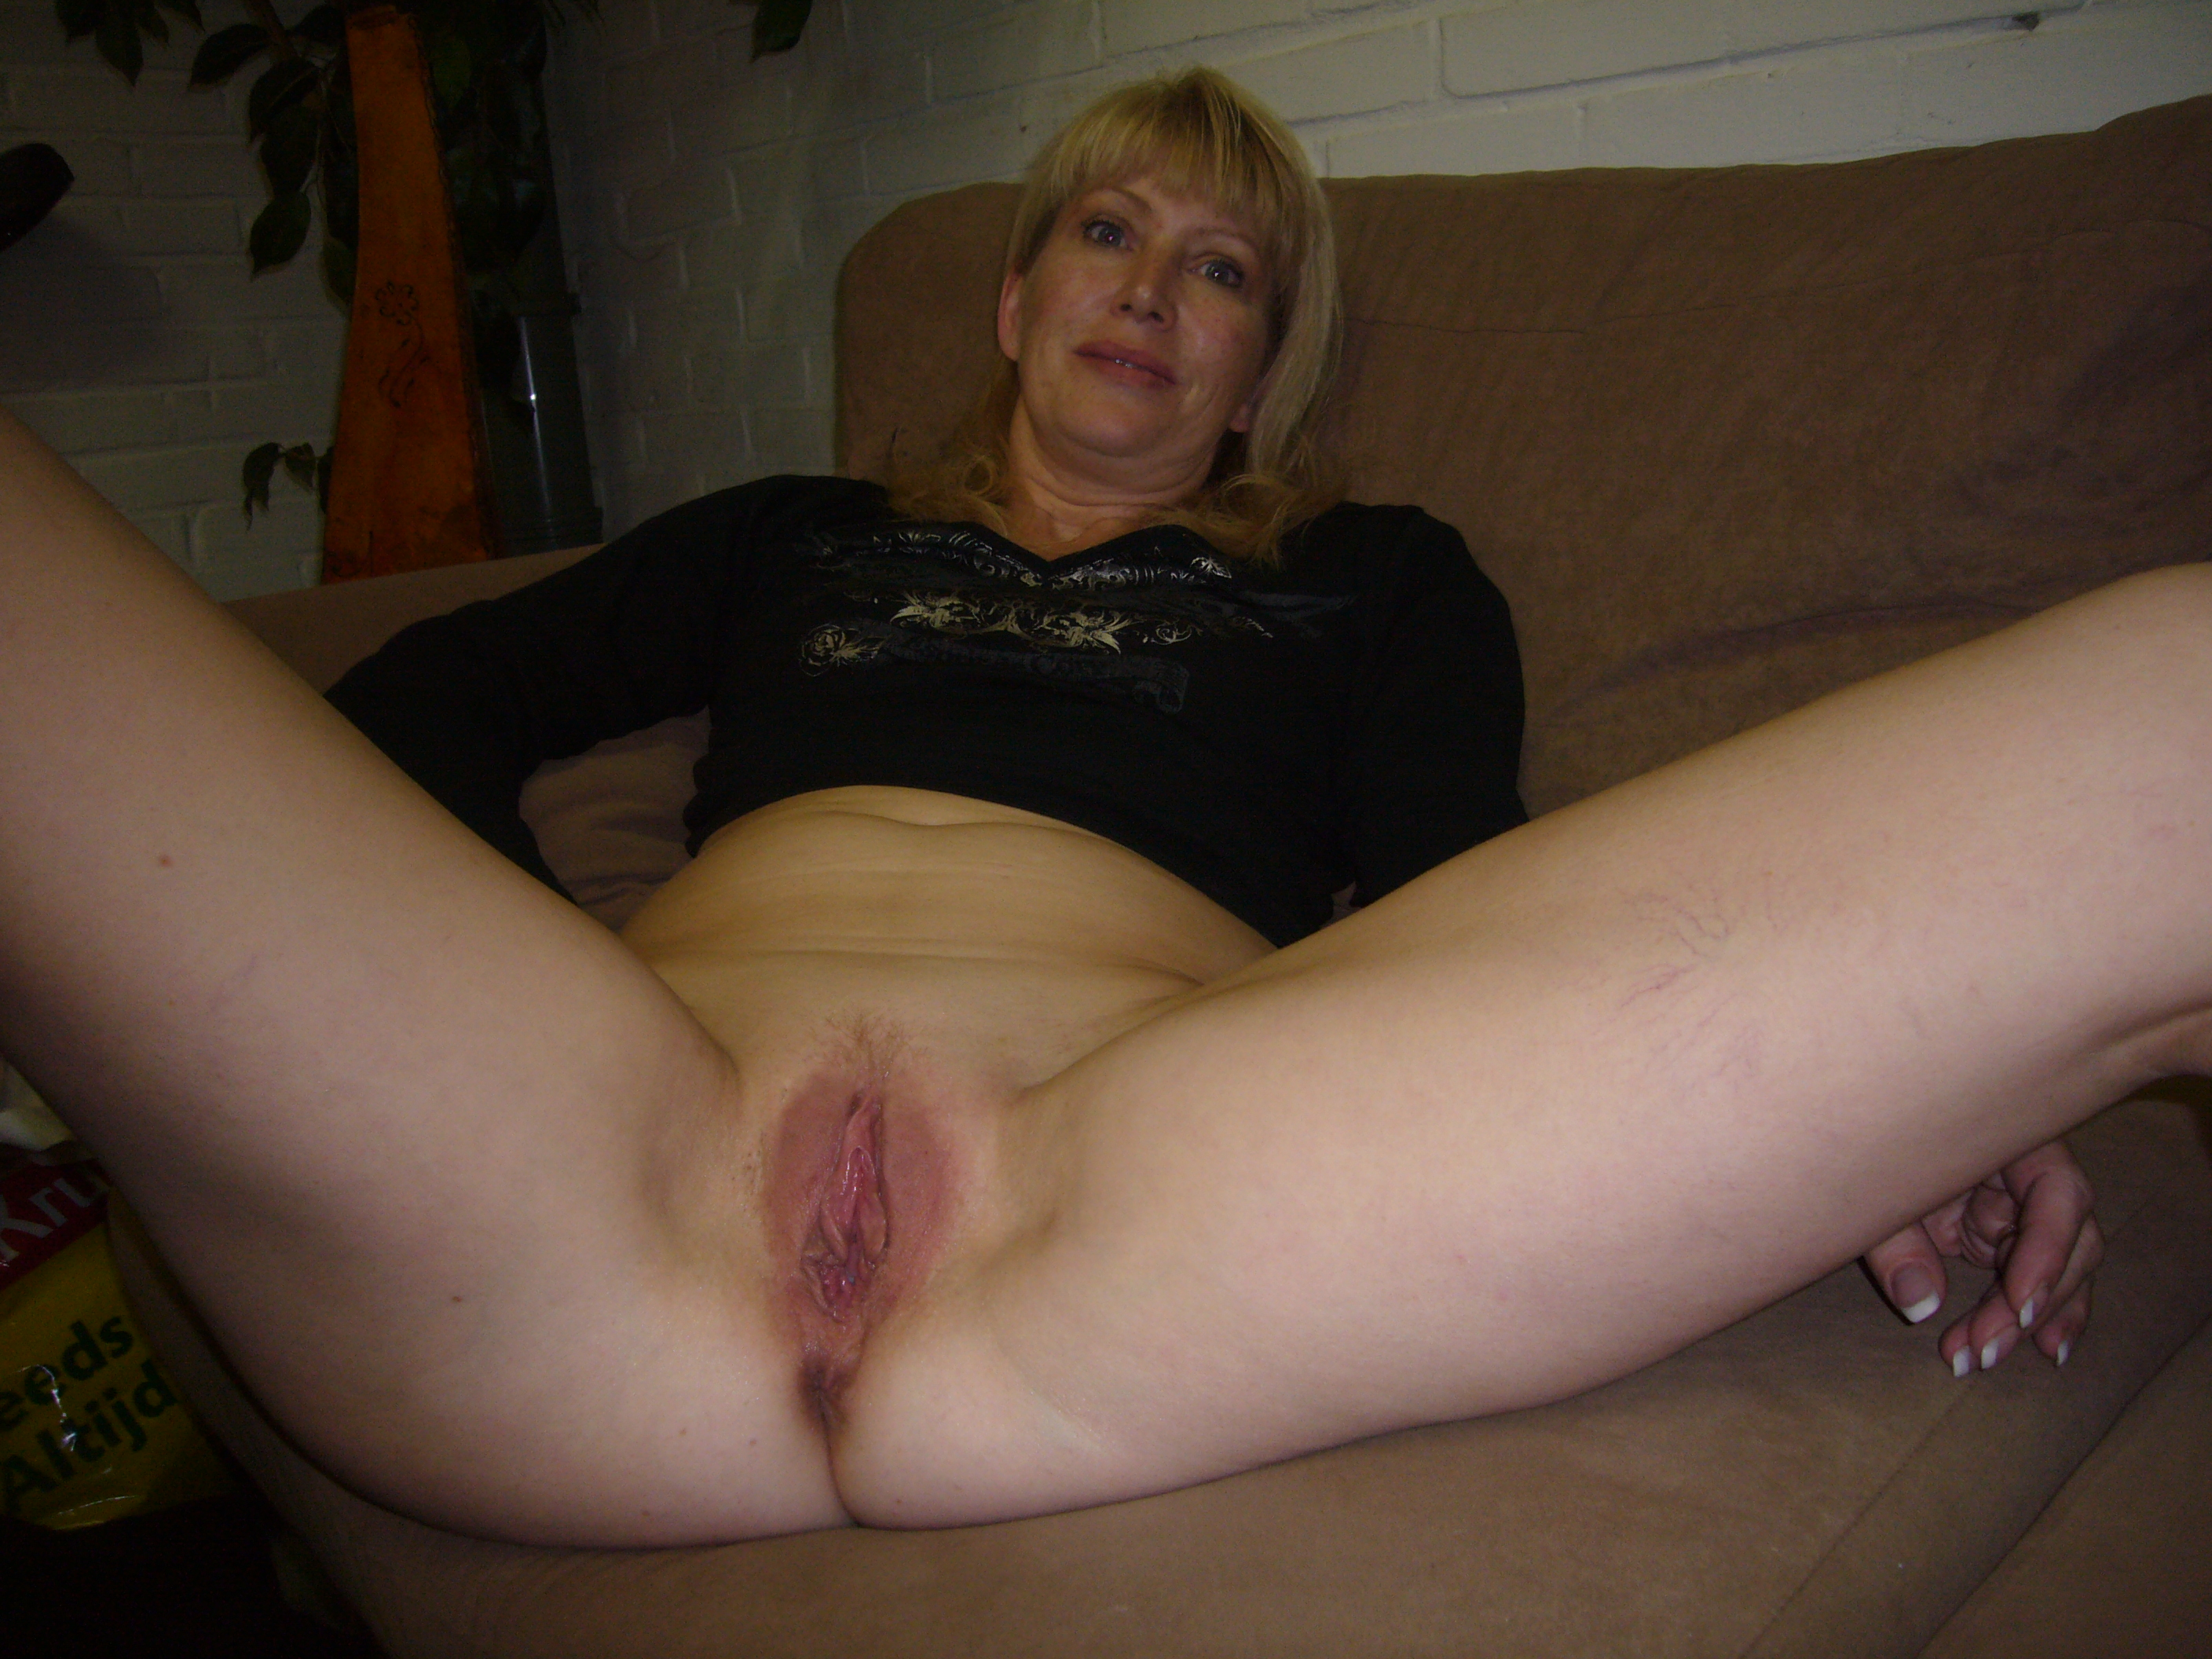 Slut whore mature